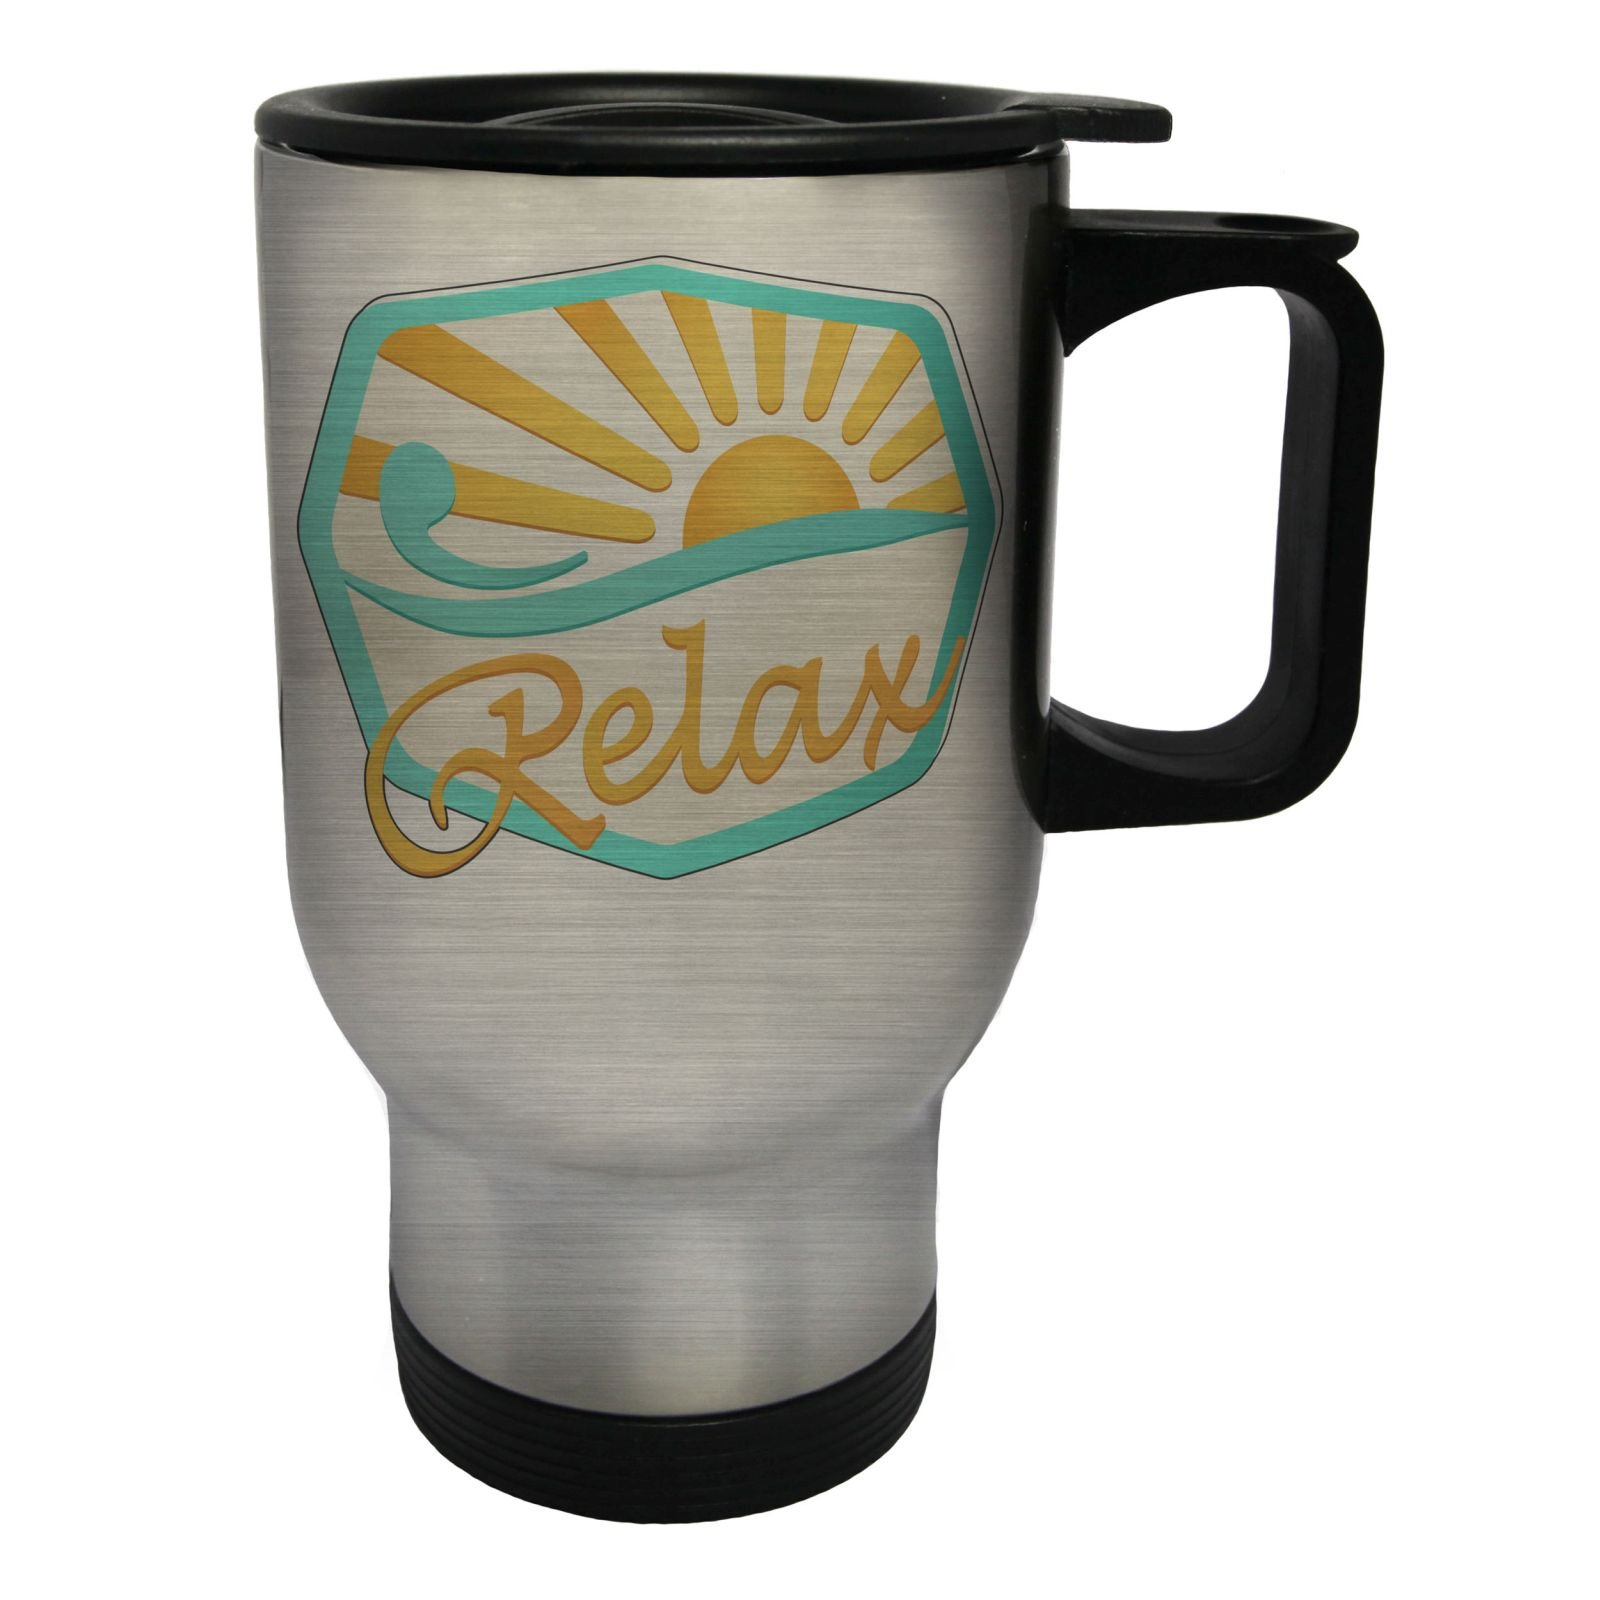 Beauty Relax Health Spa Stainless Steel Thermo Travel Mug 14oz o688ts